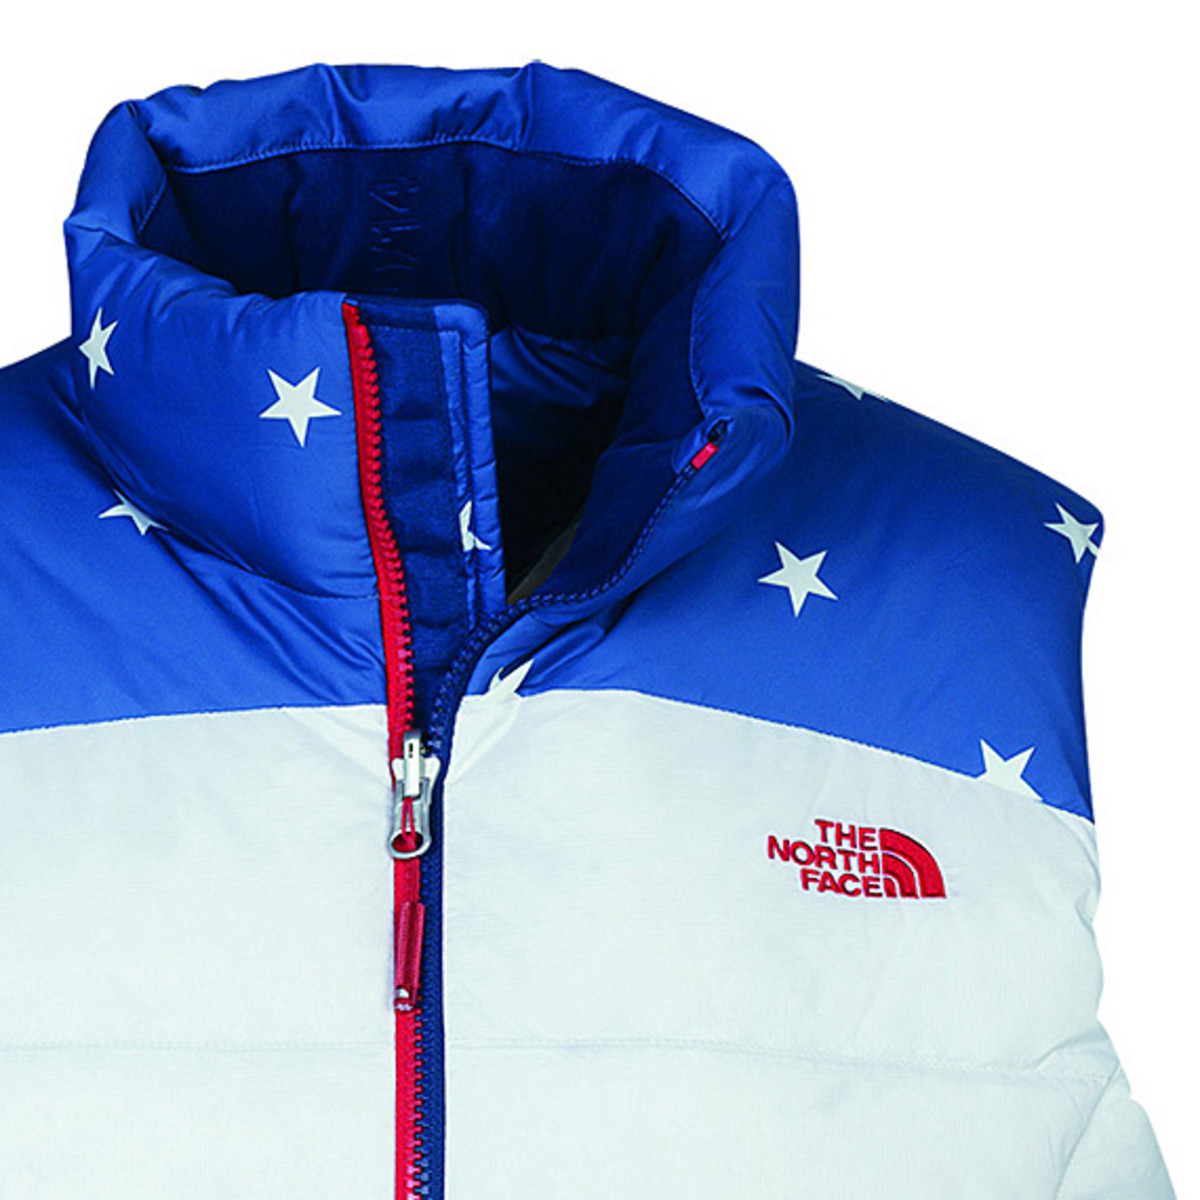 the-north-face-2014-winter-olympics-sochi-team-usa-villagewear-collection-wmns-01a